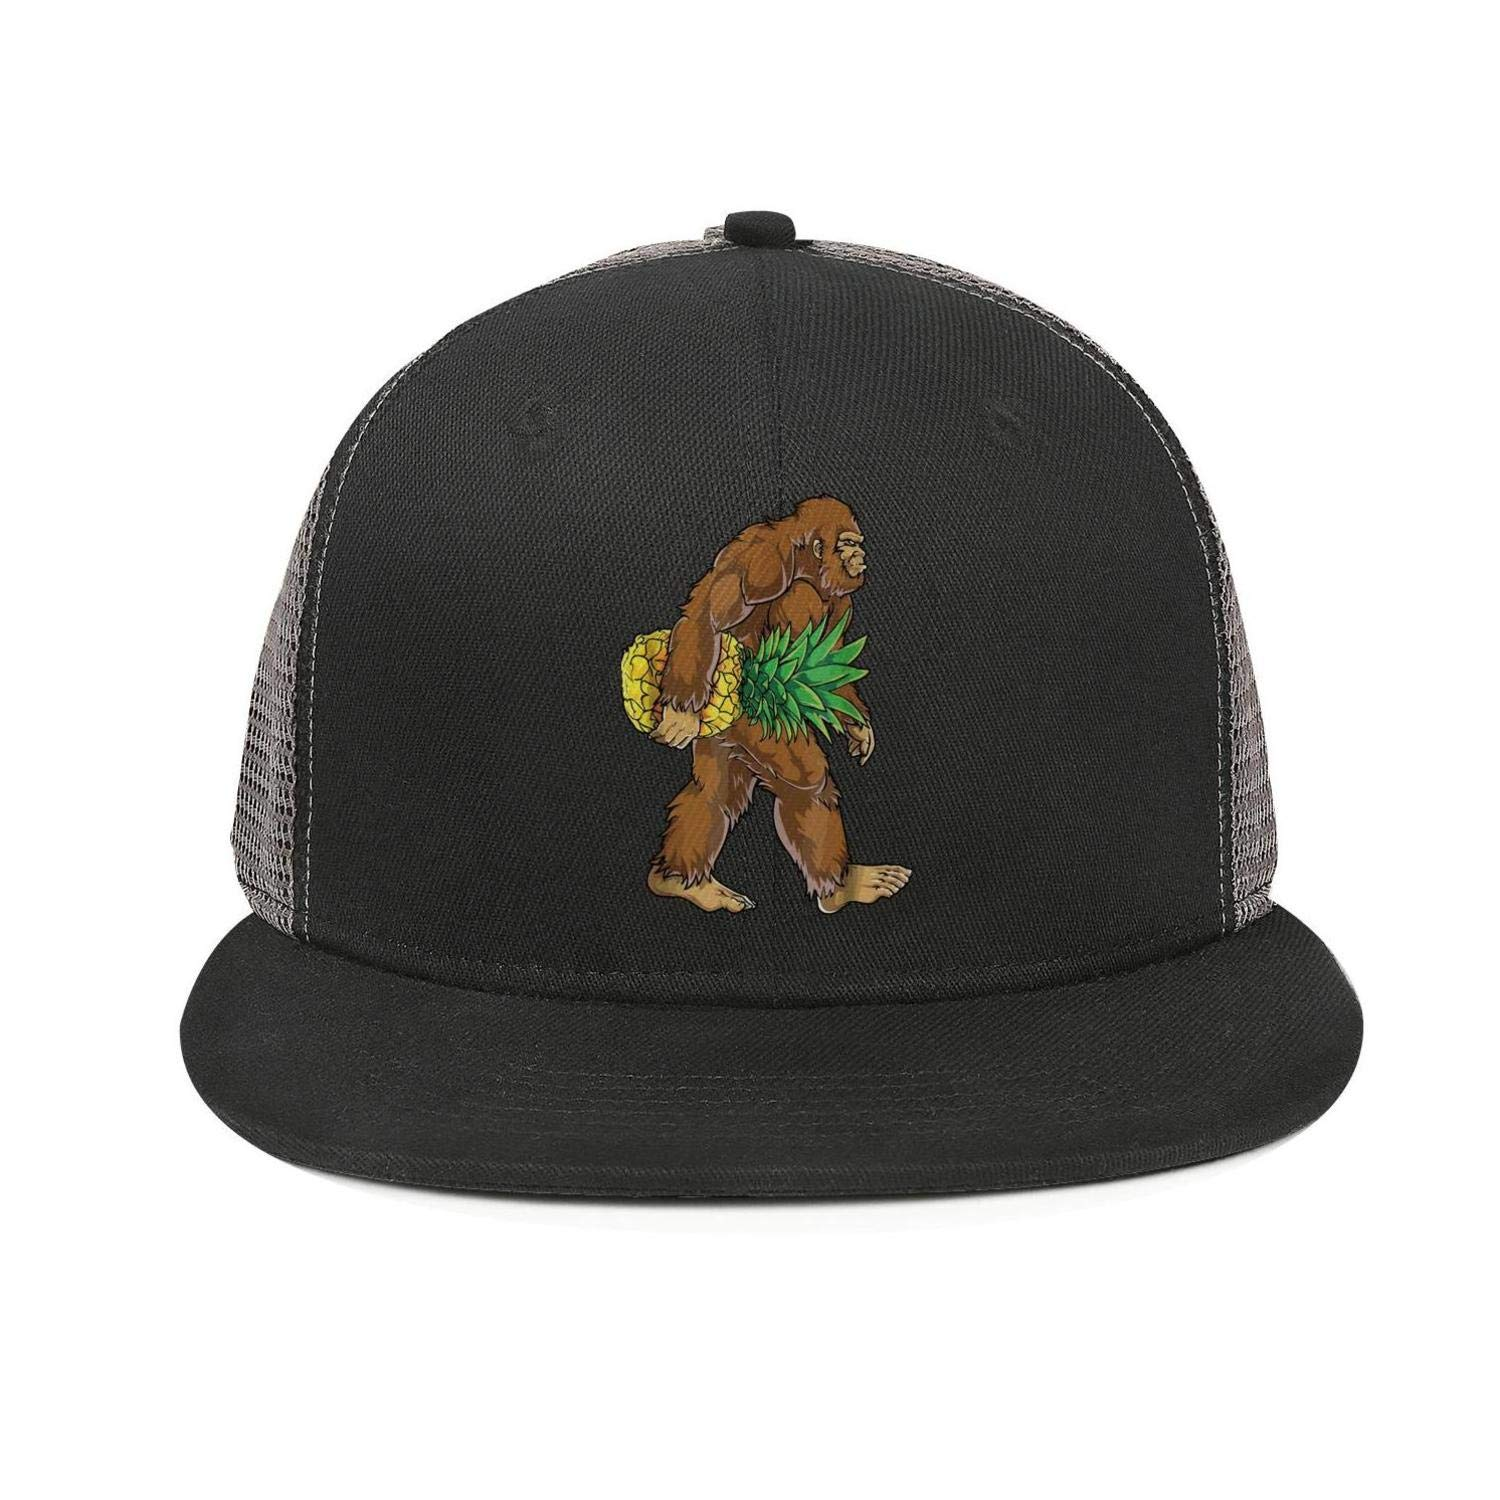 Bigfoot Carrying Pineapple Funny Snapback Ball Cap Vintage All Cotton Caps Relaxed Dad Hats